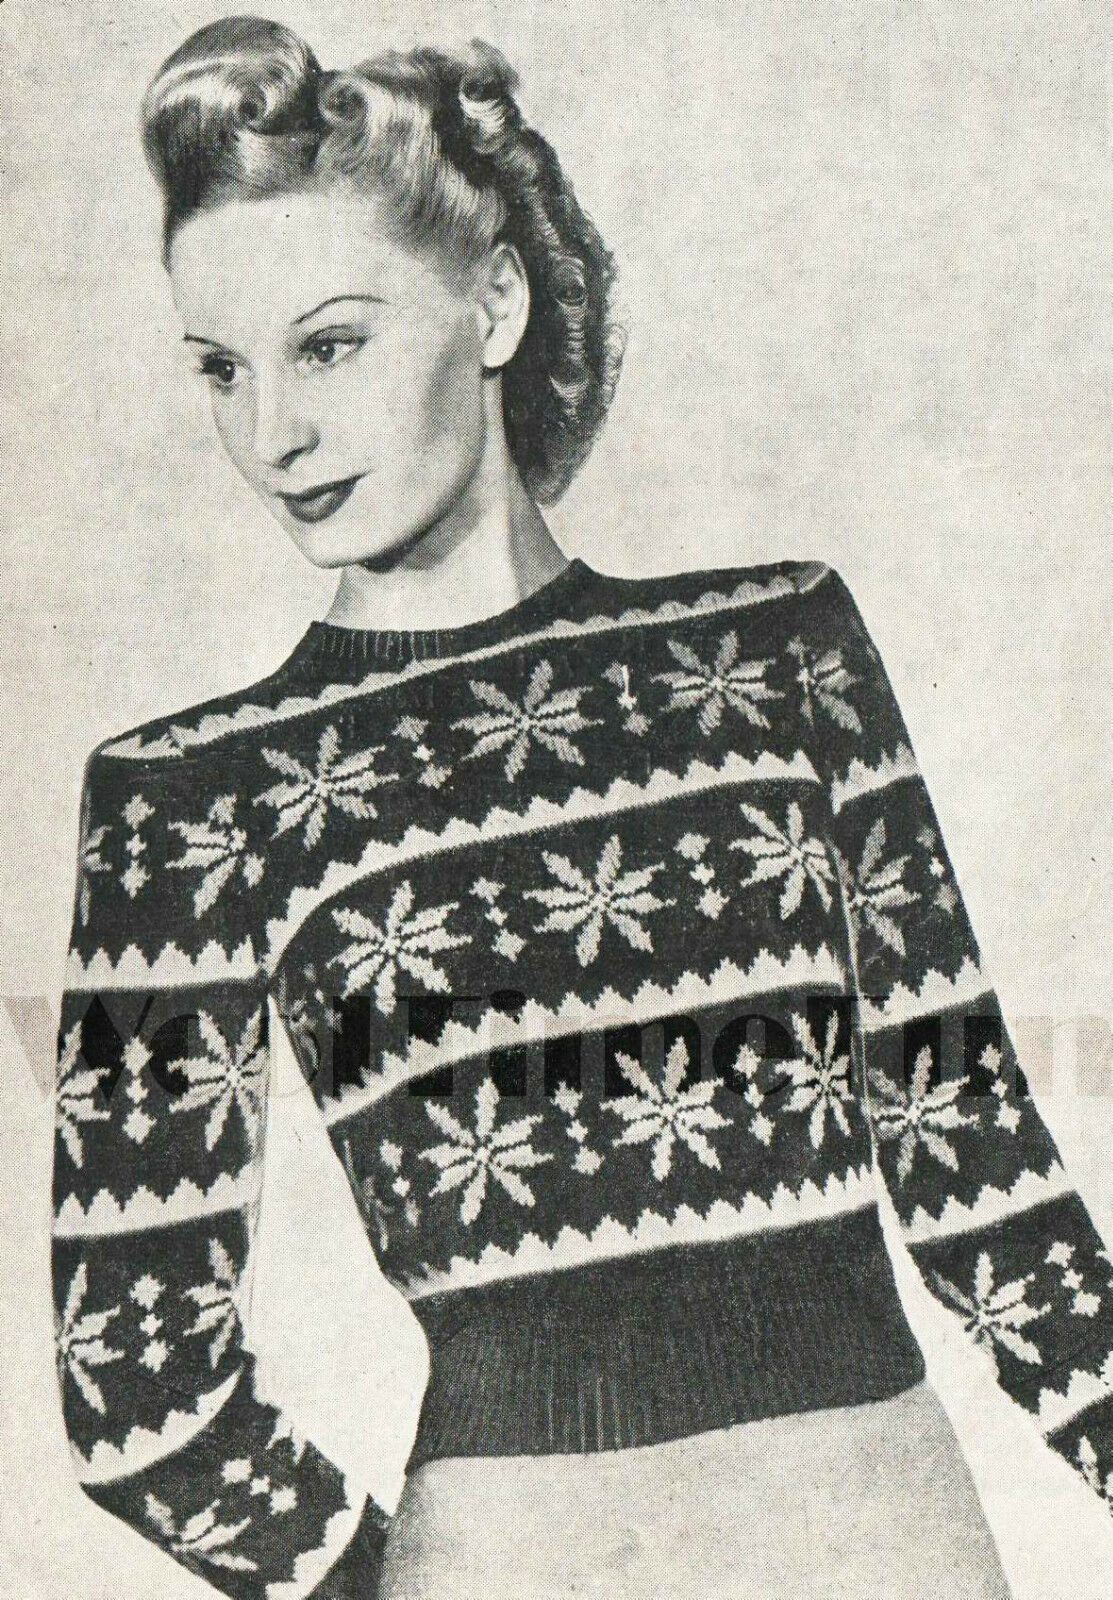 Snowflake Jumper Knitting Pattern : Vintage Knitting Pattern 1940s Ladys Fair Isle Jumper. Snowflake Christm...